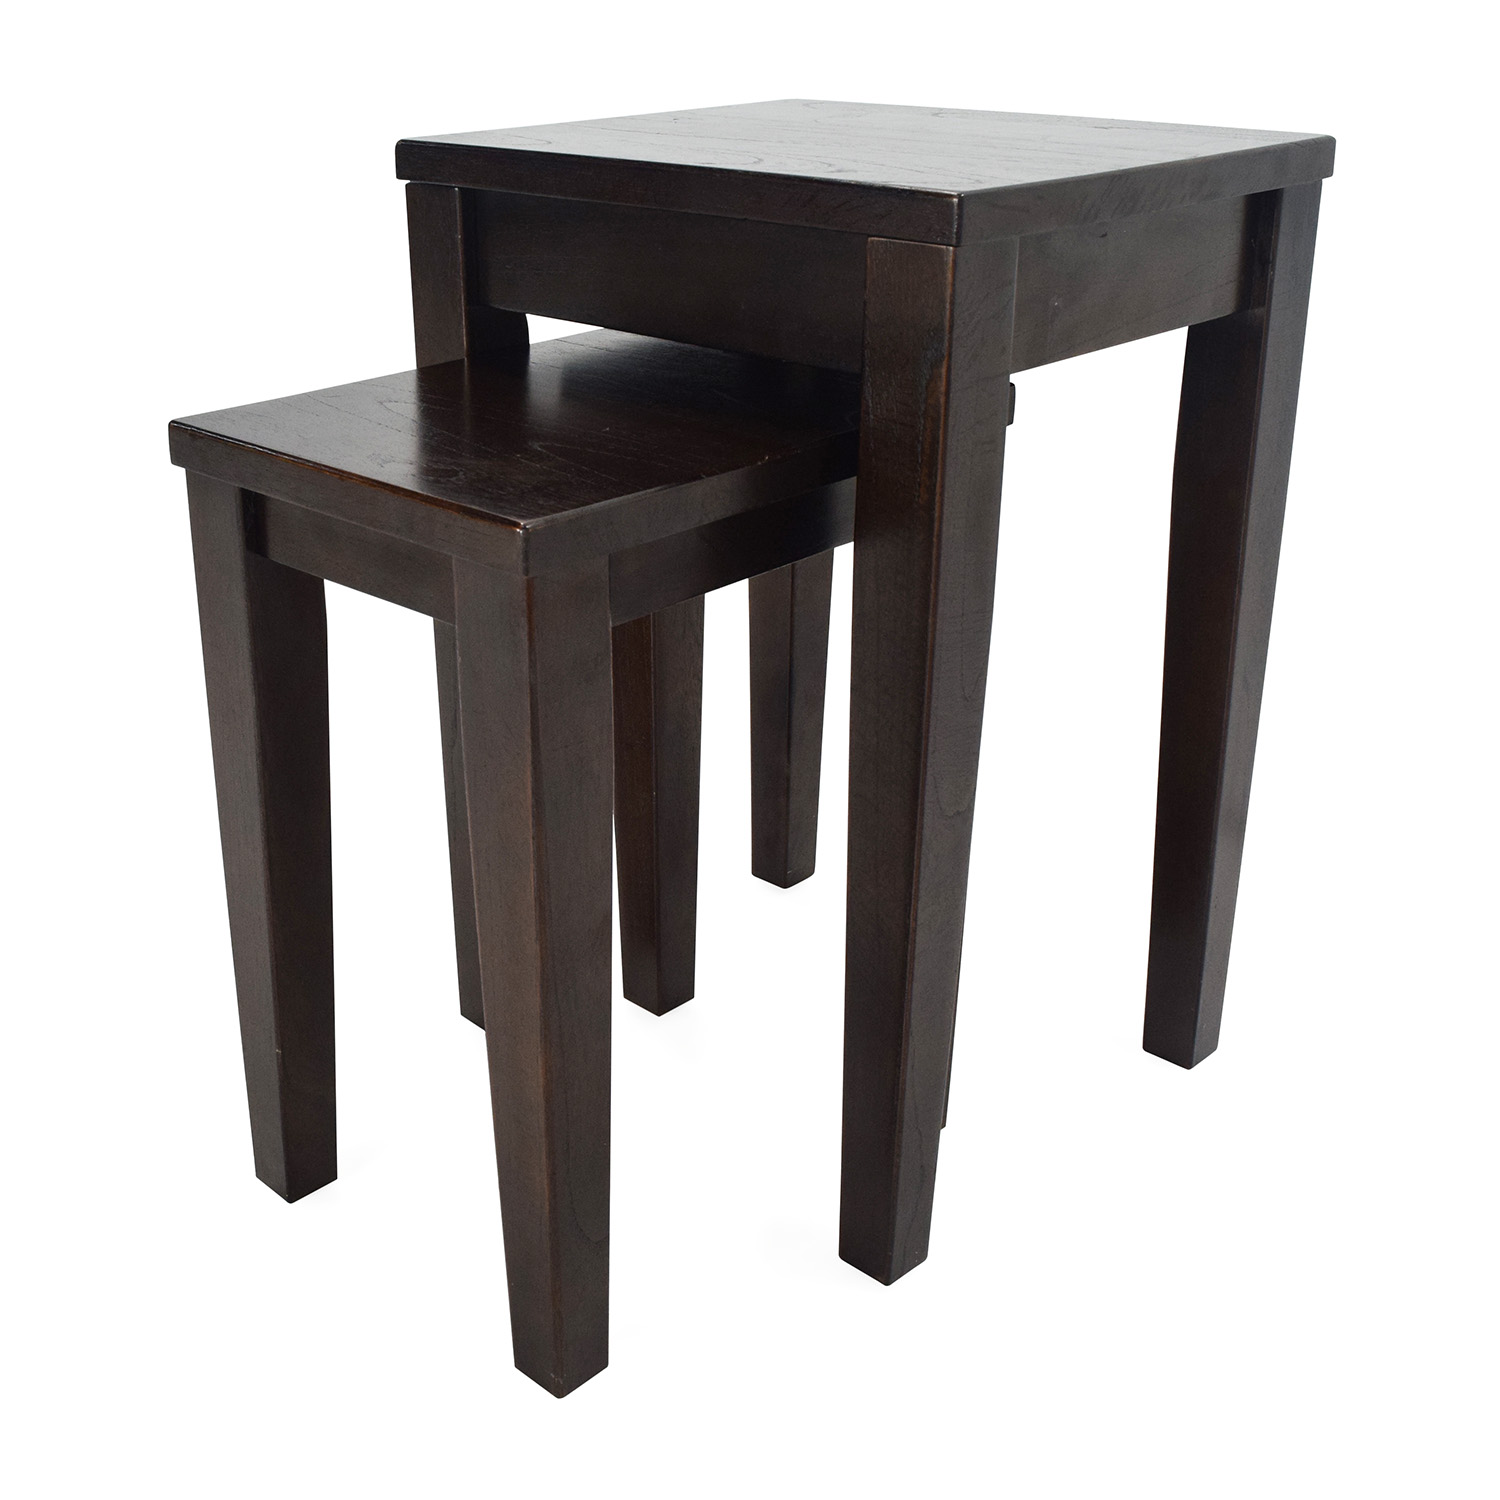 shop Crate & Barrel Nesting Tables Crate and Barrel End Tables